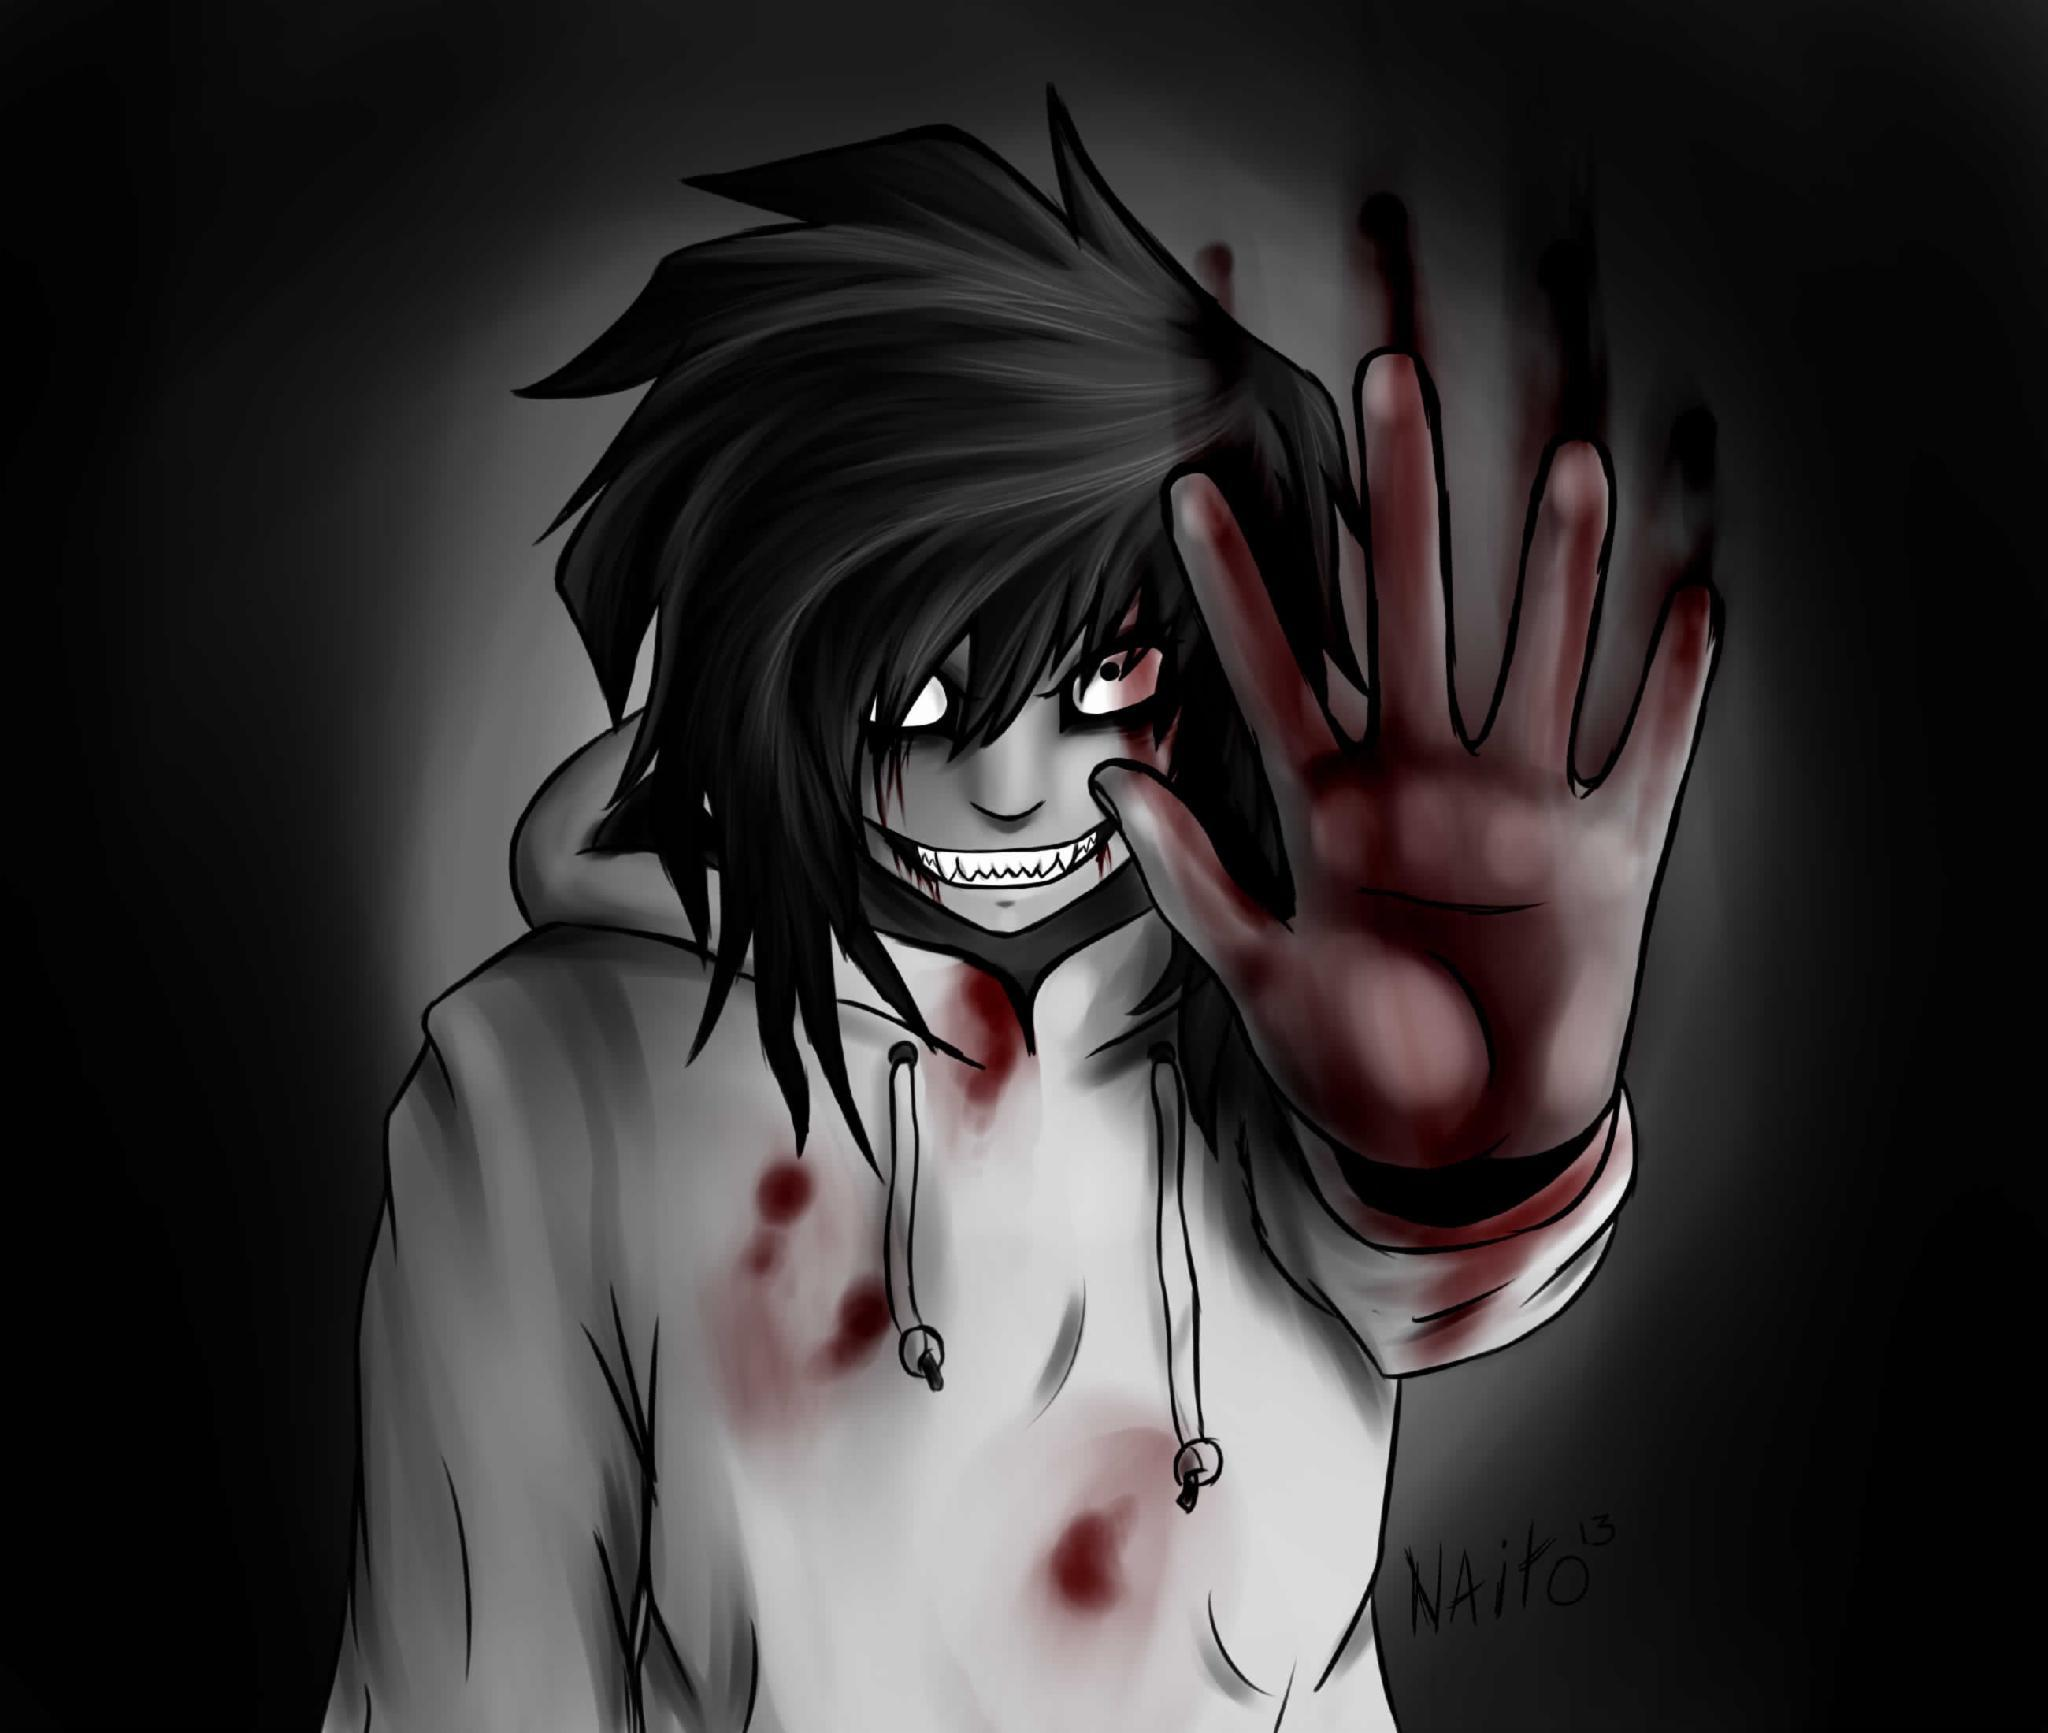 If anyone wants to creepypasta rp that'd be nice, just PM me if interested